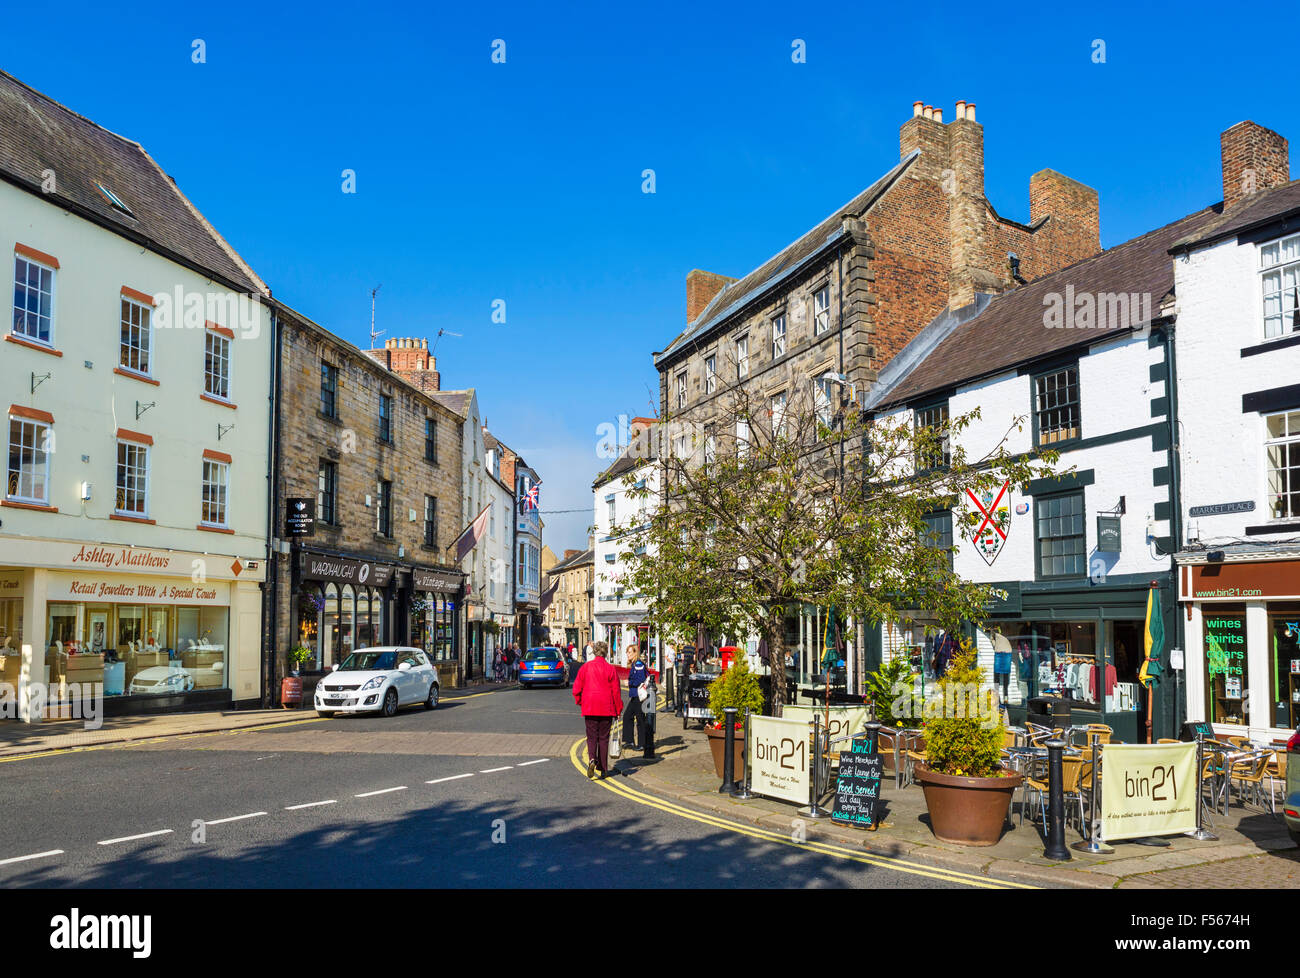 Market Place in the town centre, Hexham, Northumberland, England, UK Stock Photo